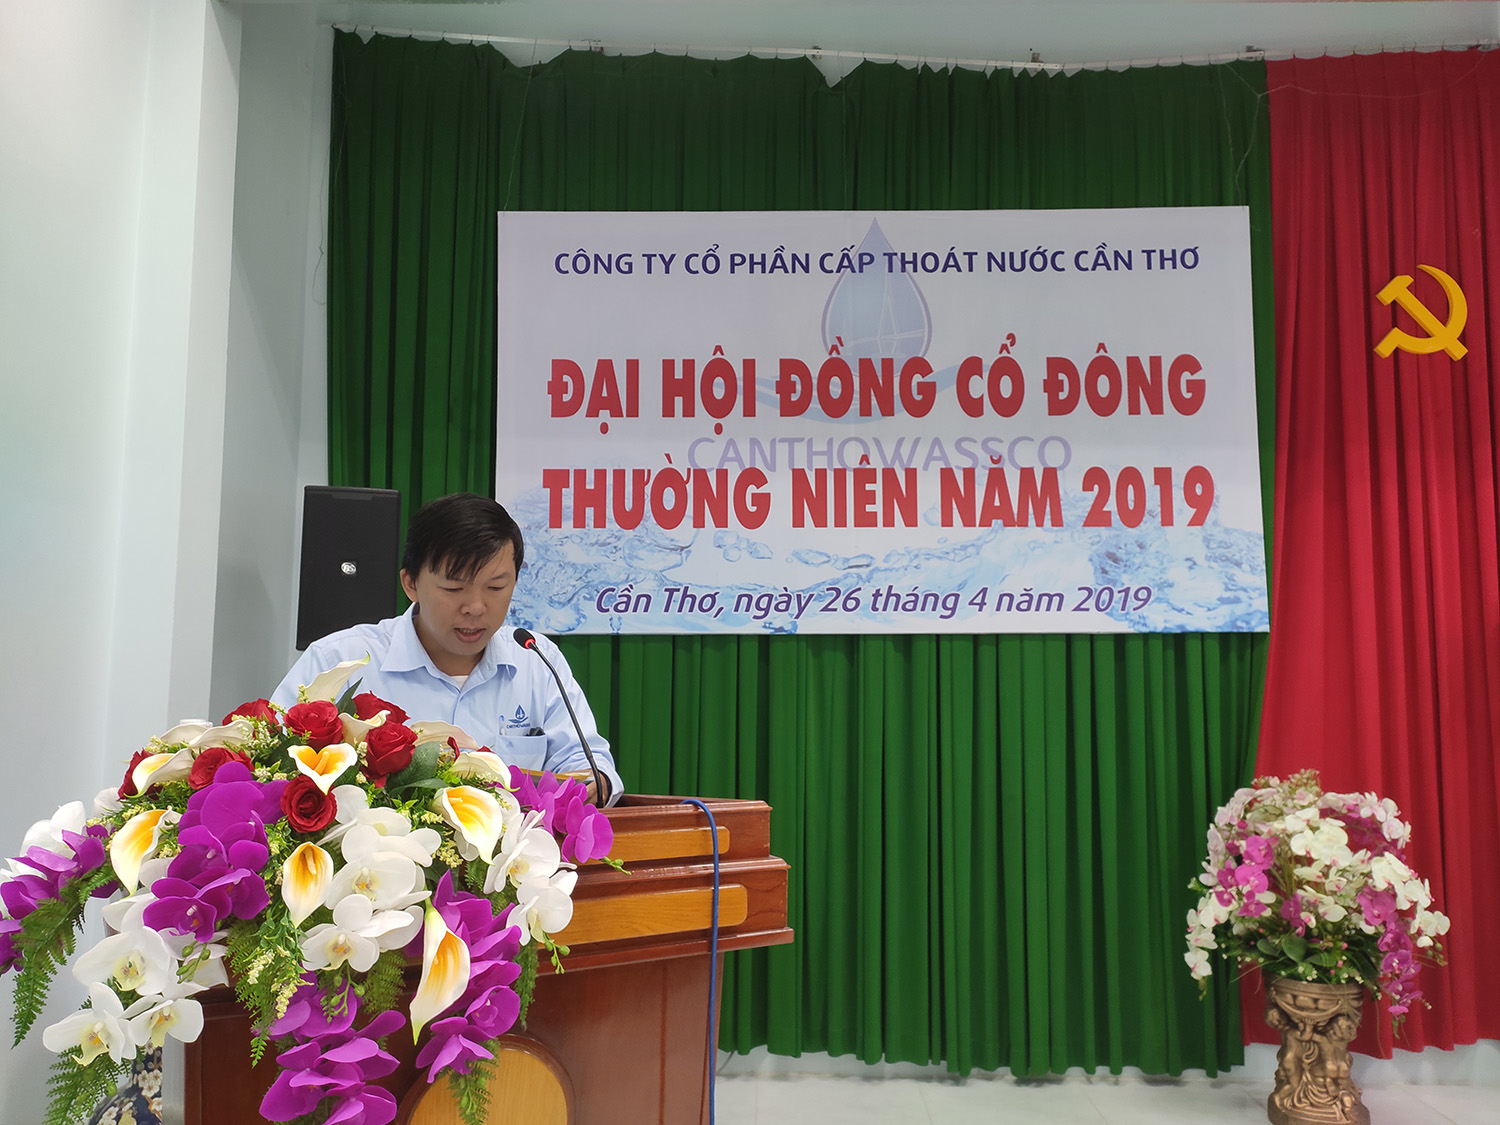 dhdcd 2019 03